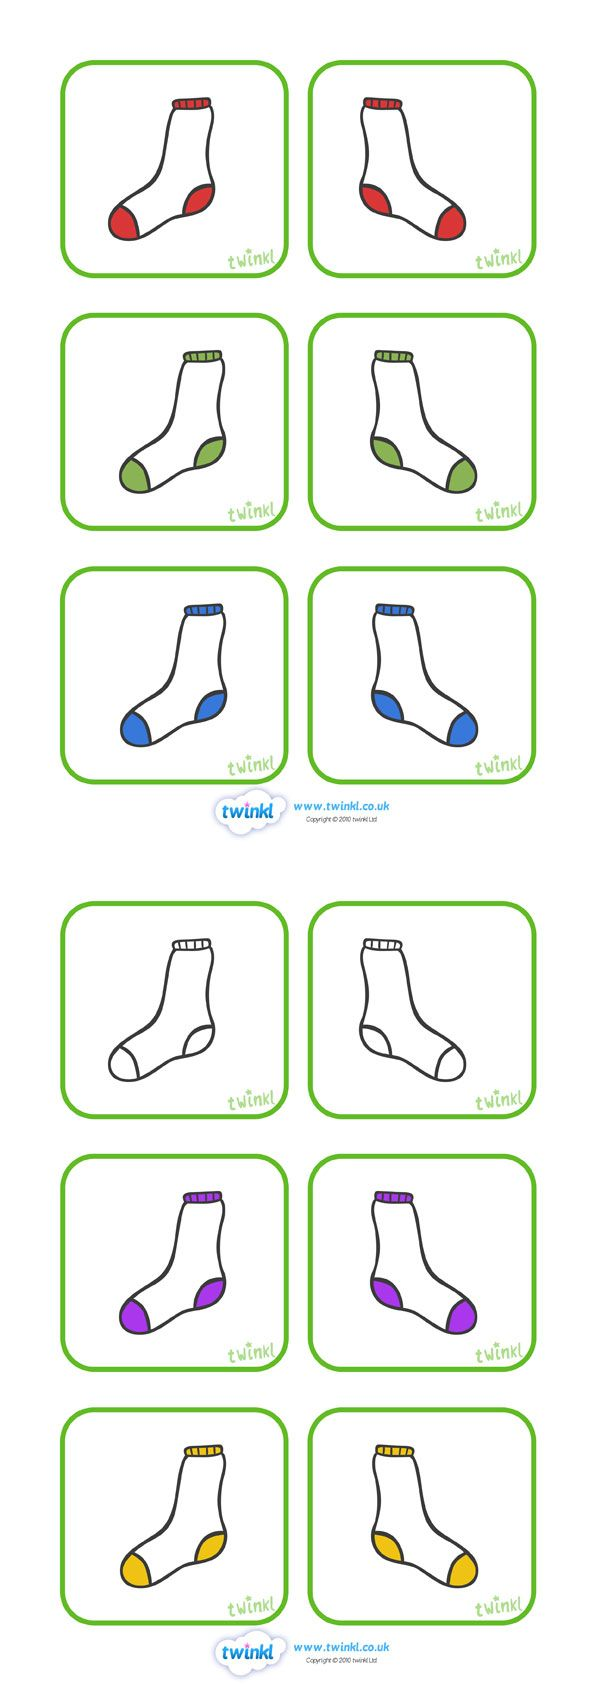 Twinkl Resources Gt Gt Matching Socks Colour Activity